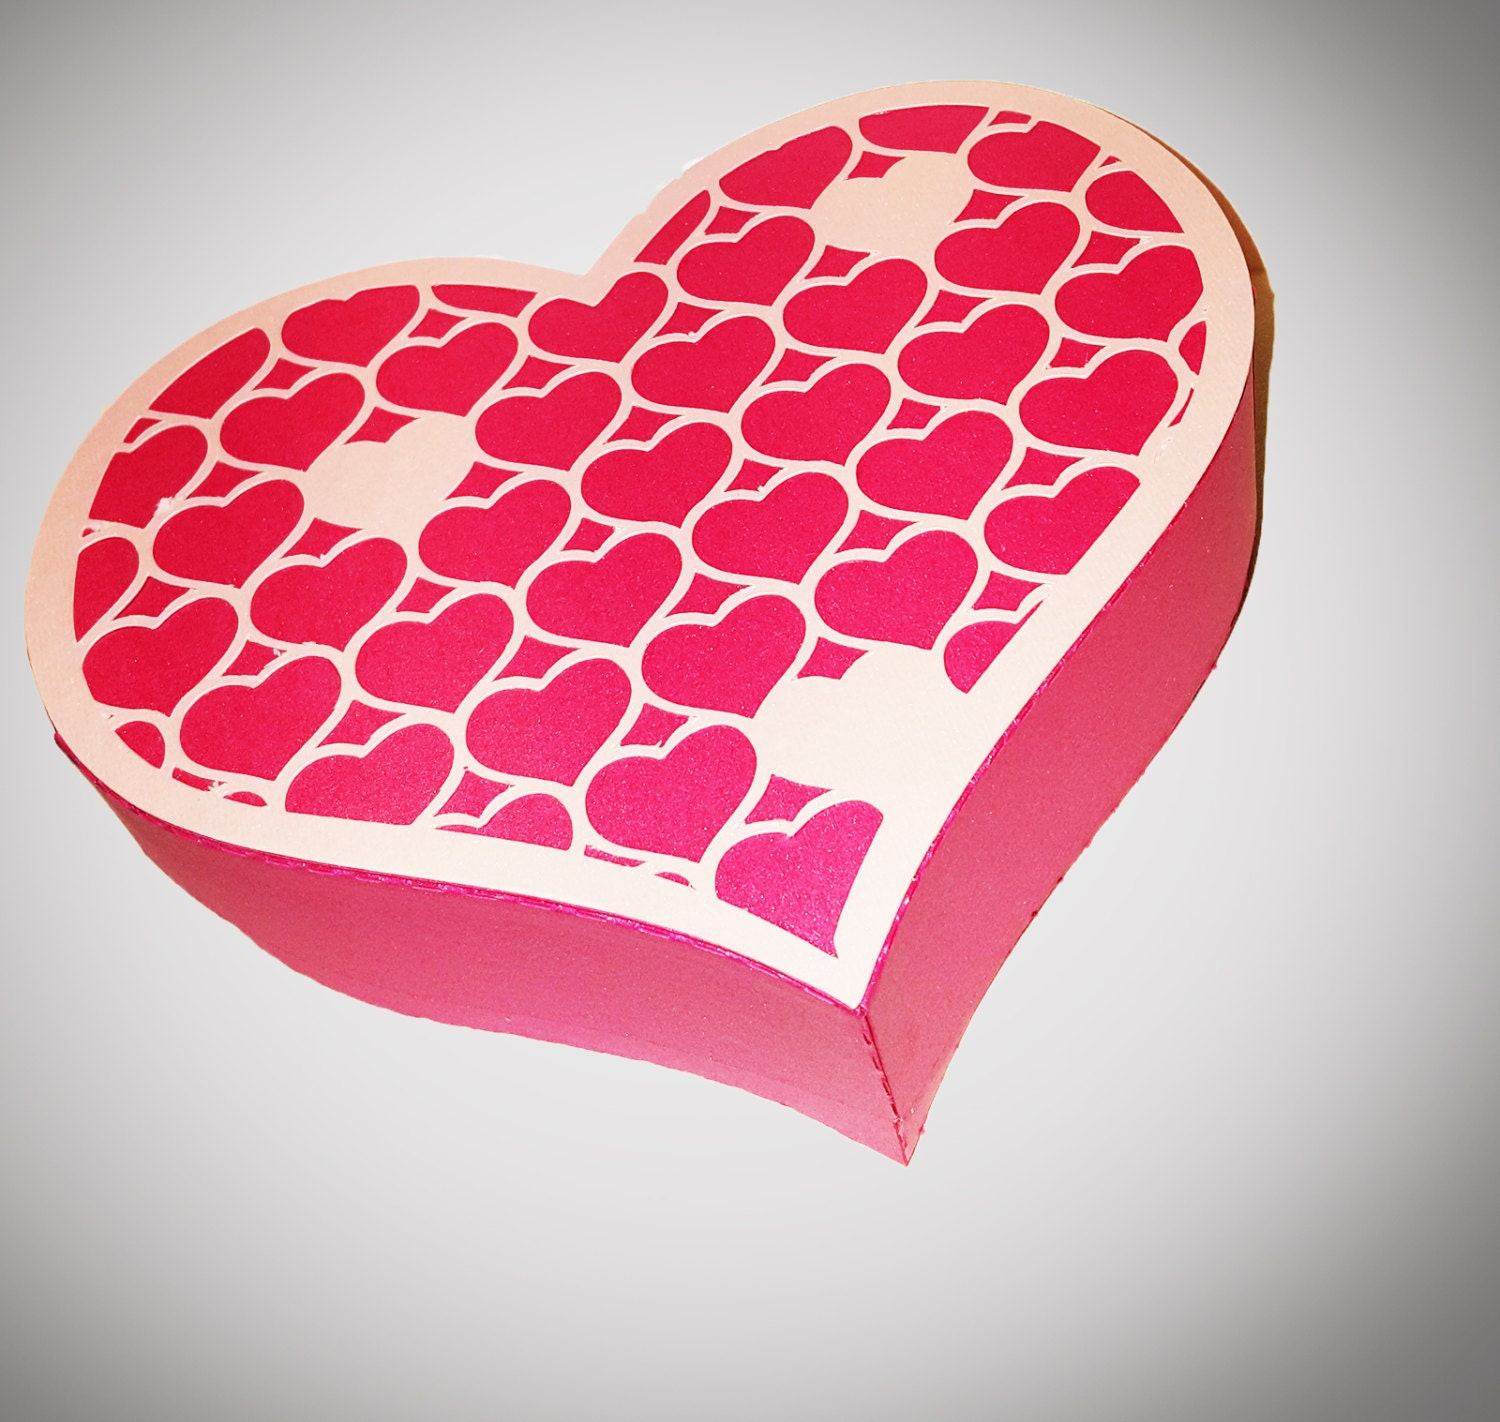 Heart Shaped Gift Box With Heart Cut Out Lid Template